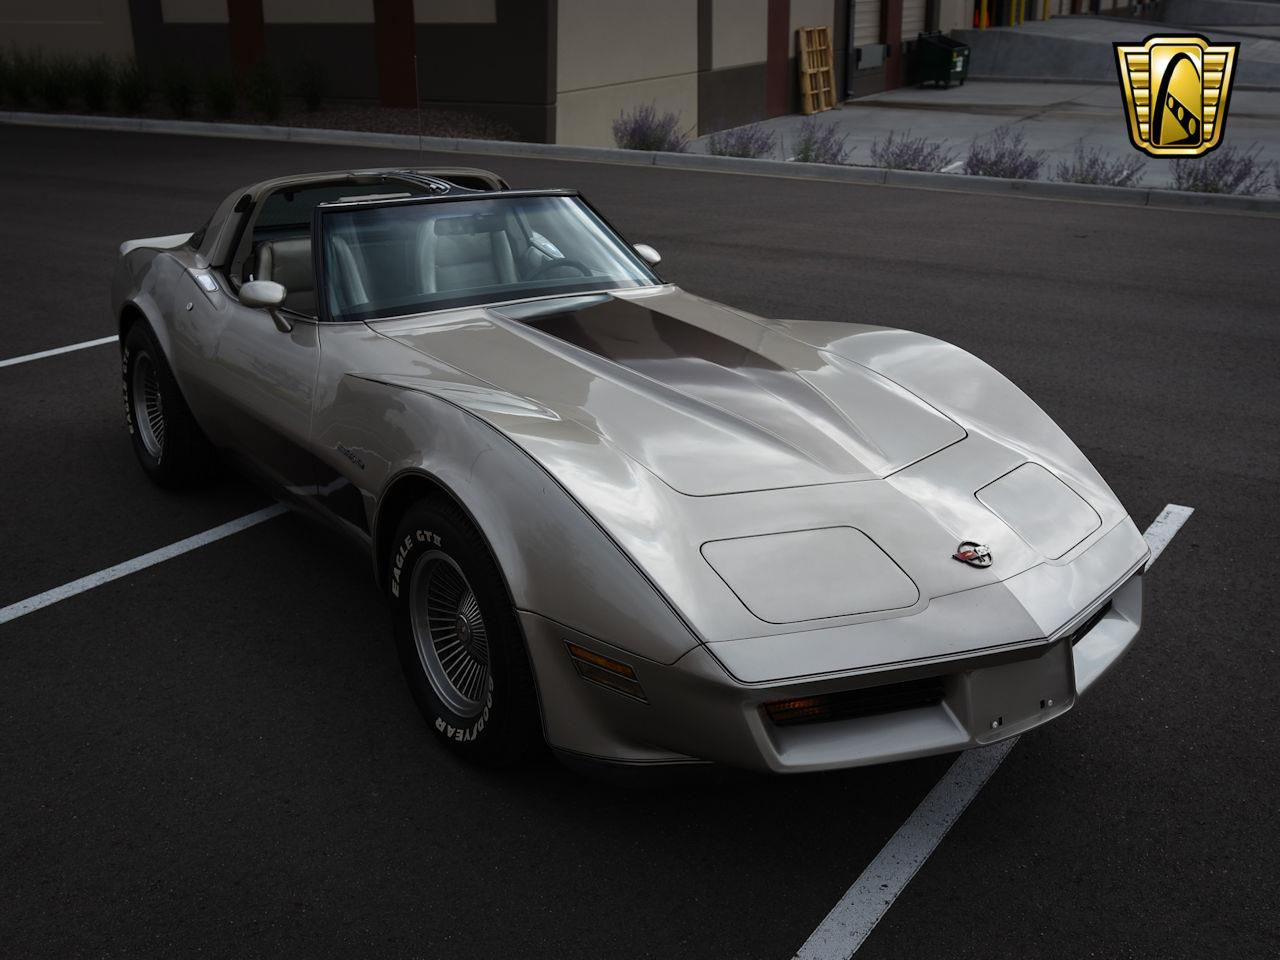 Large Picture of '82 Corvette located in Illinois - $18,995.00 Offered by Gateway Classic Cars - Denver - LNRR